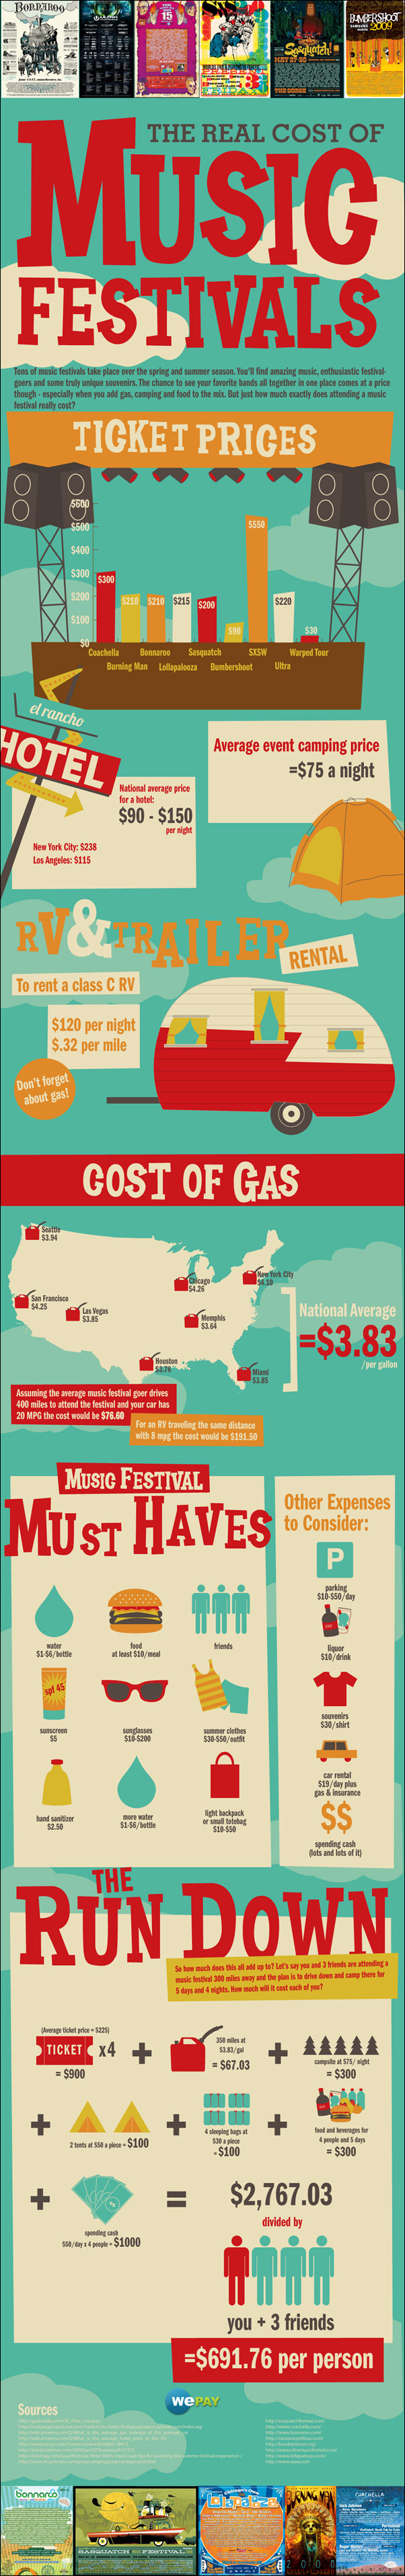 Music Festival Expenses-Infographic